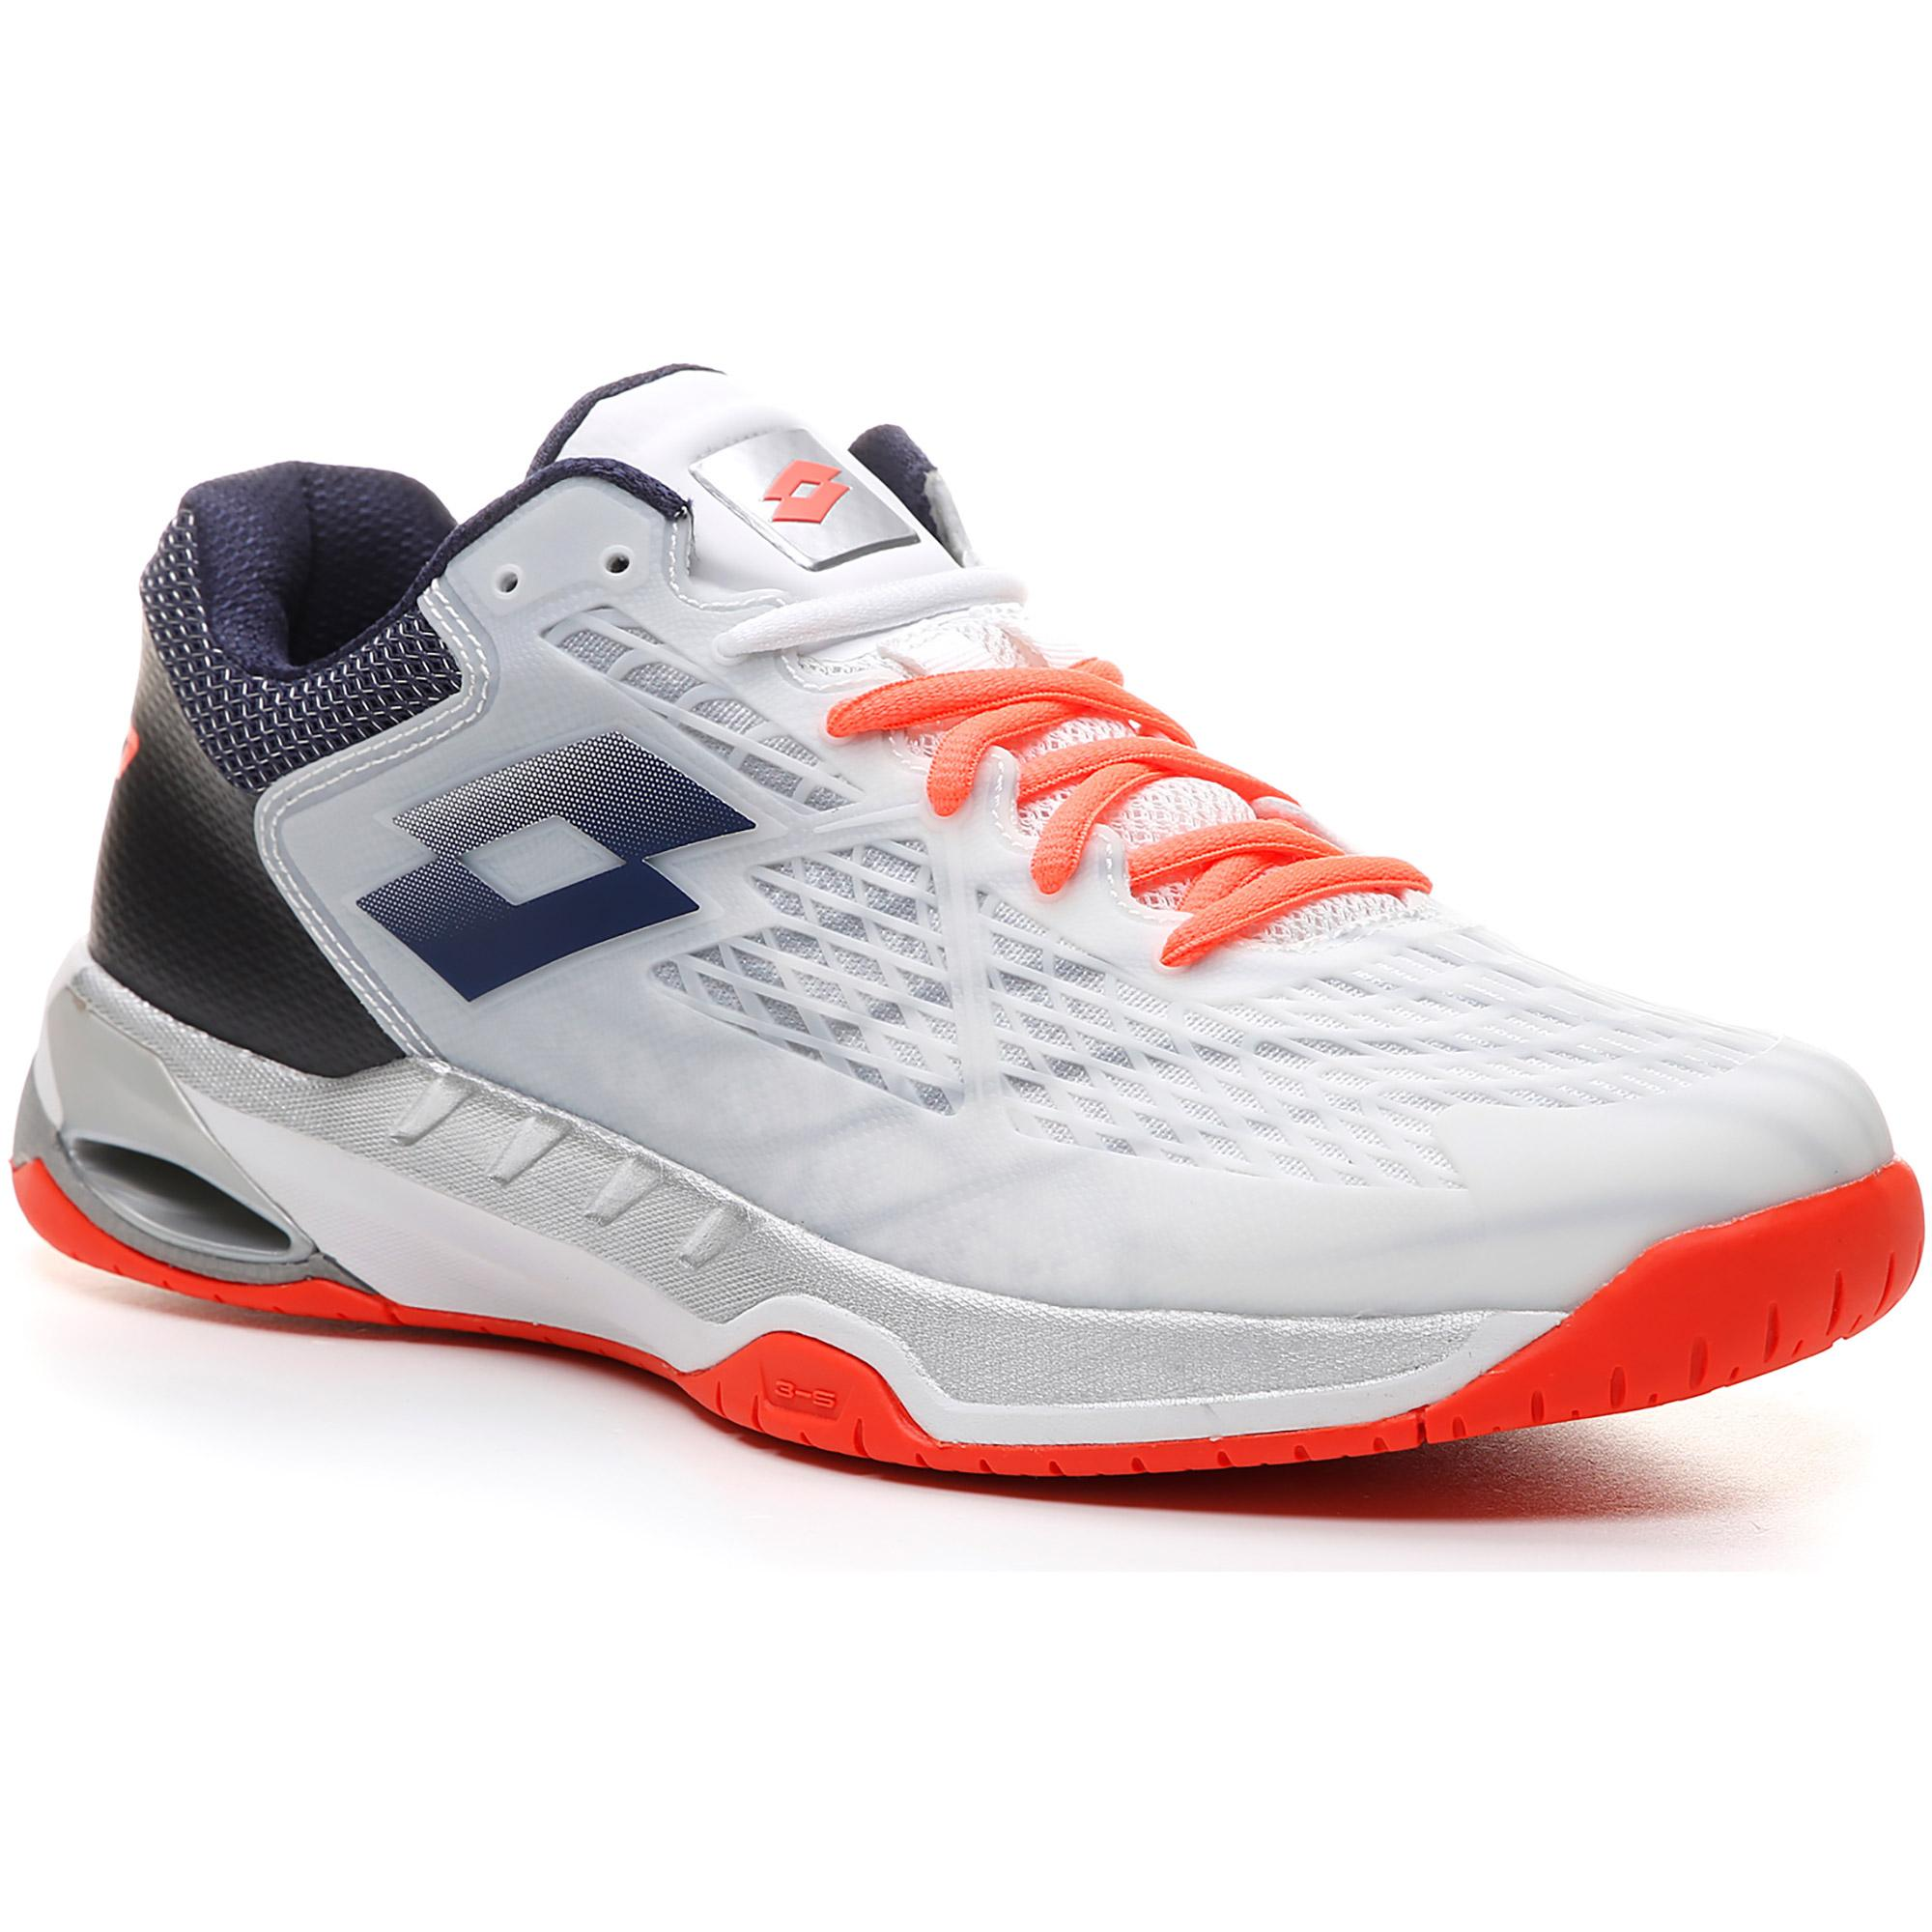 new arrival bcd97 39c16 Lotto Mens Mirage 100 Tennis Shoes - All White Navy Blue Orange -  Tennisnuts.com